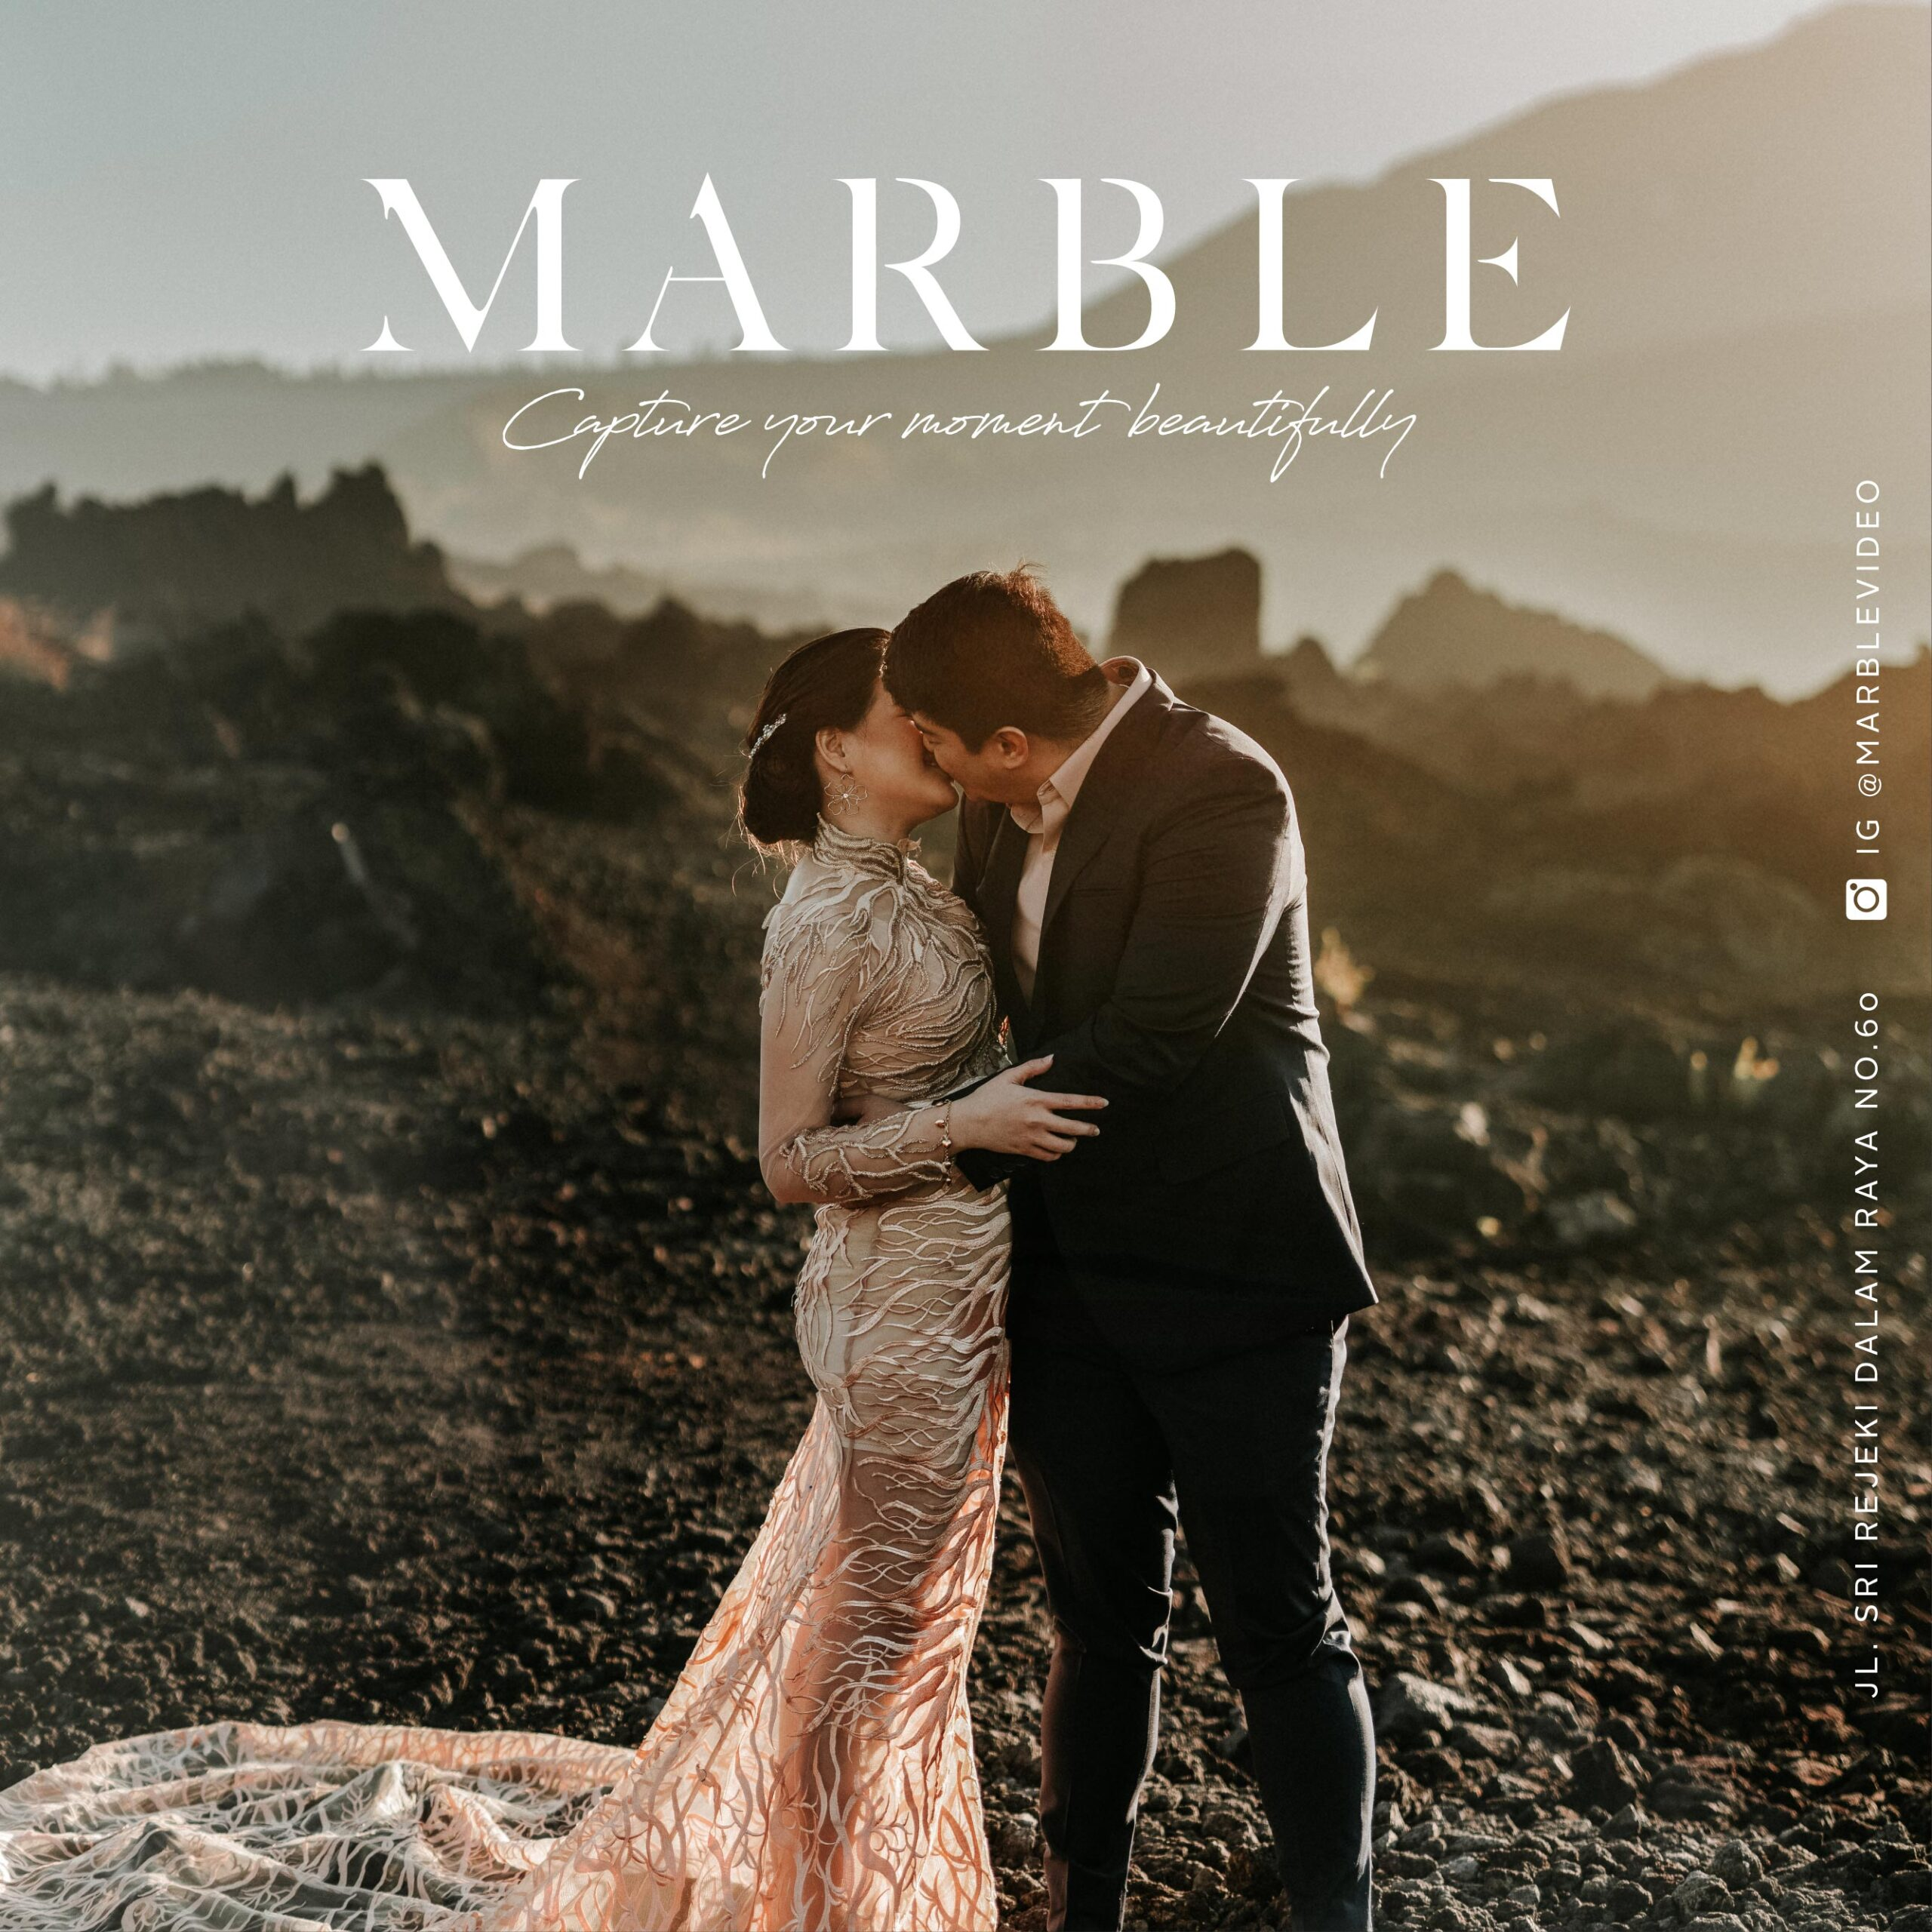 Marble Video